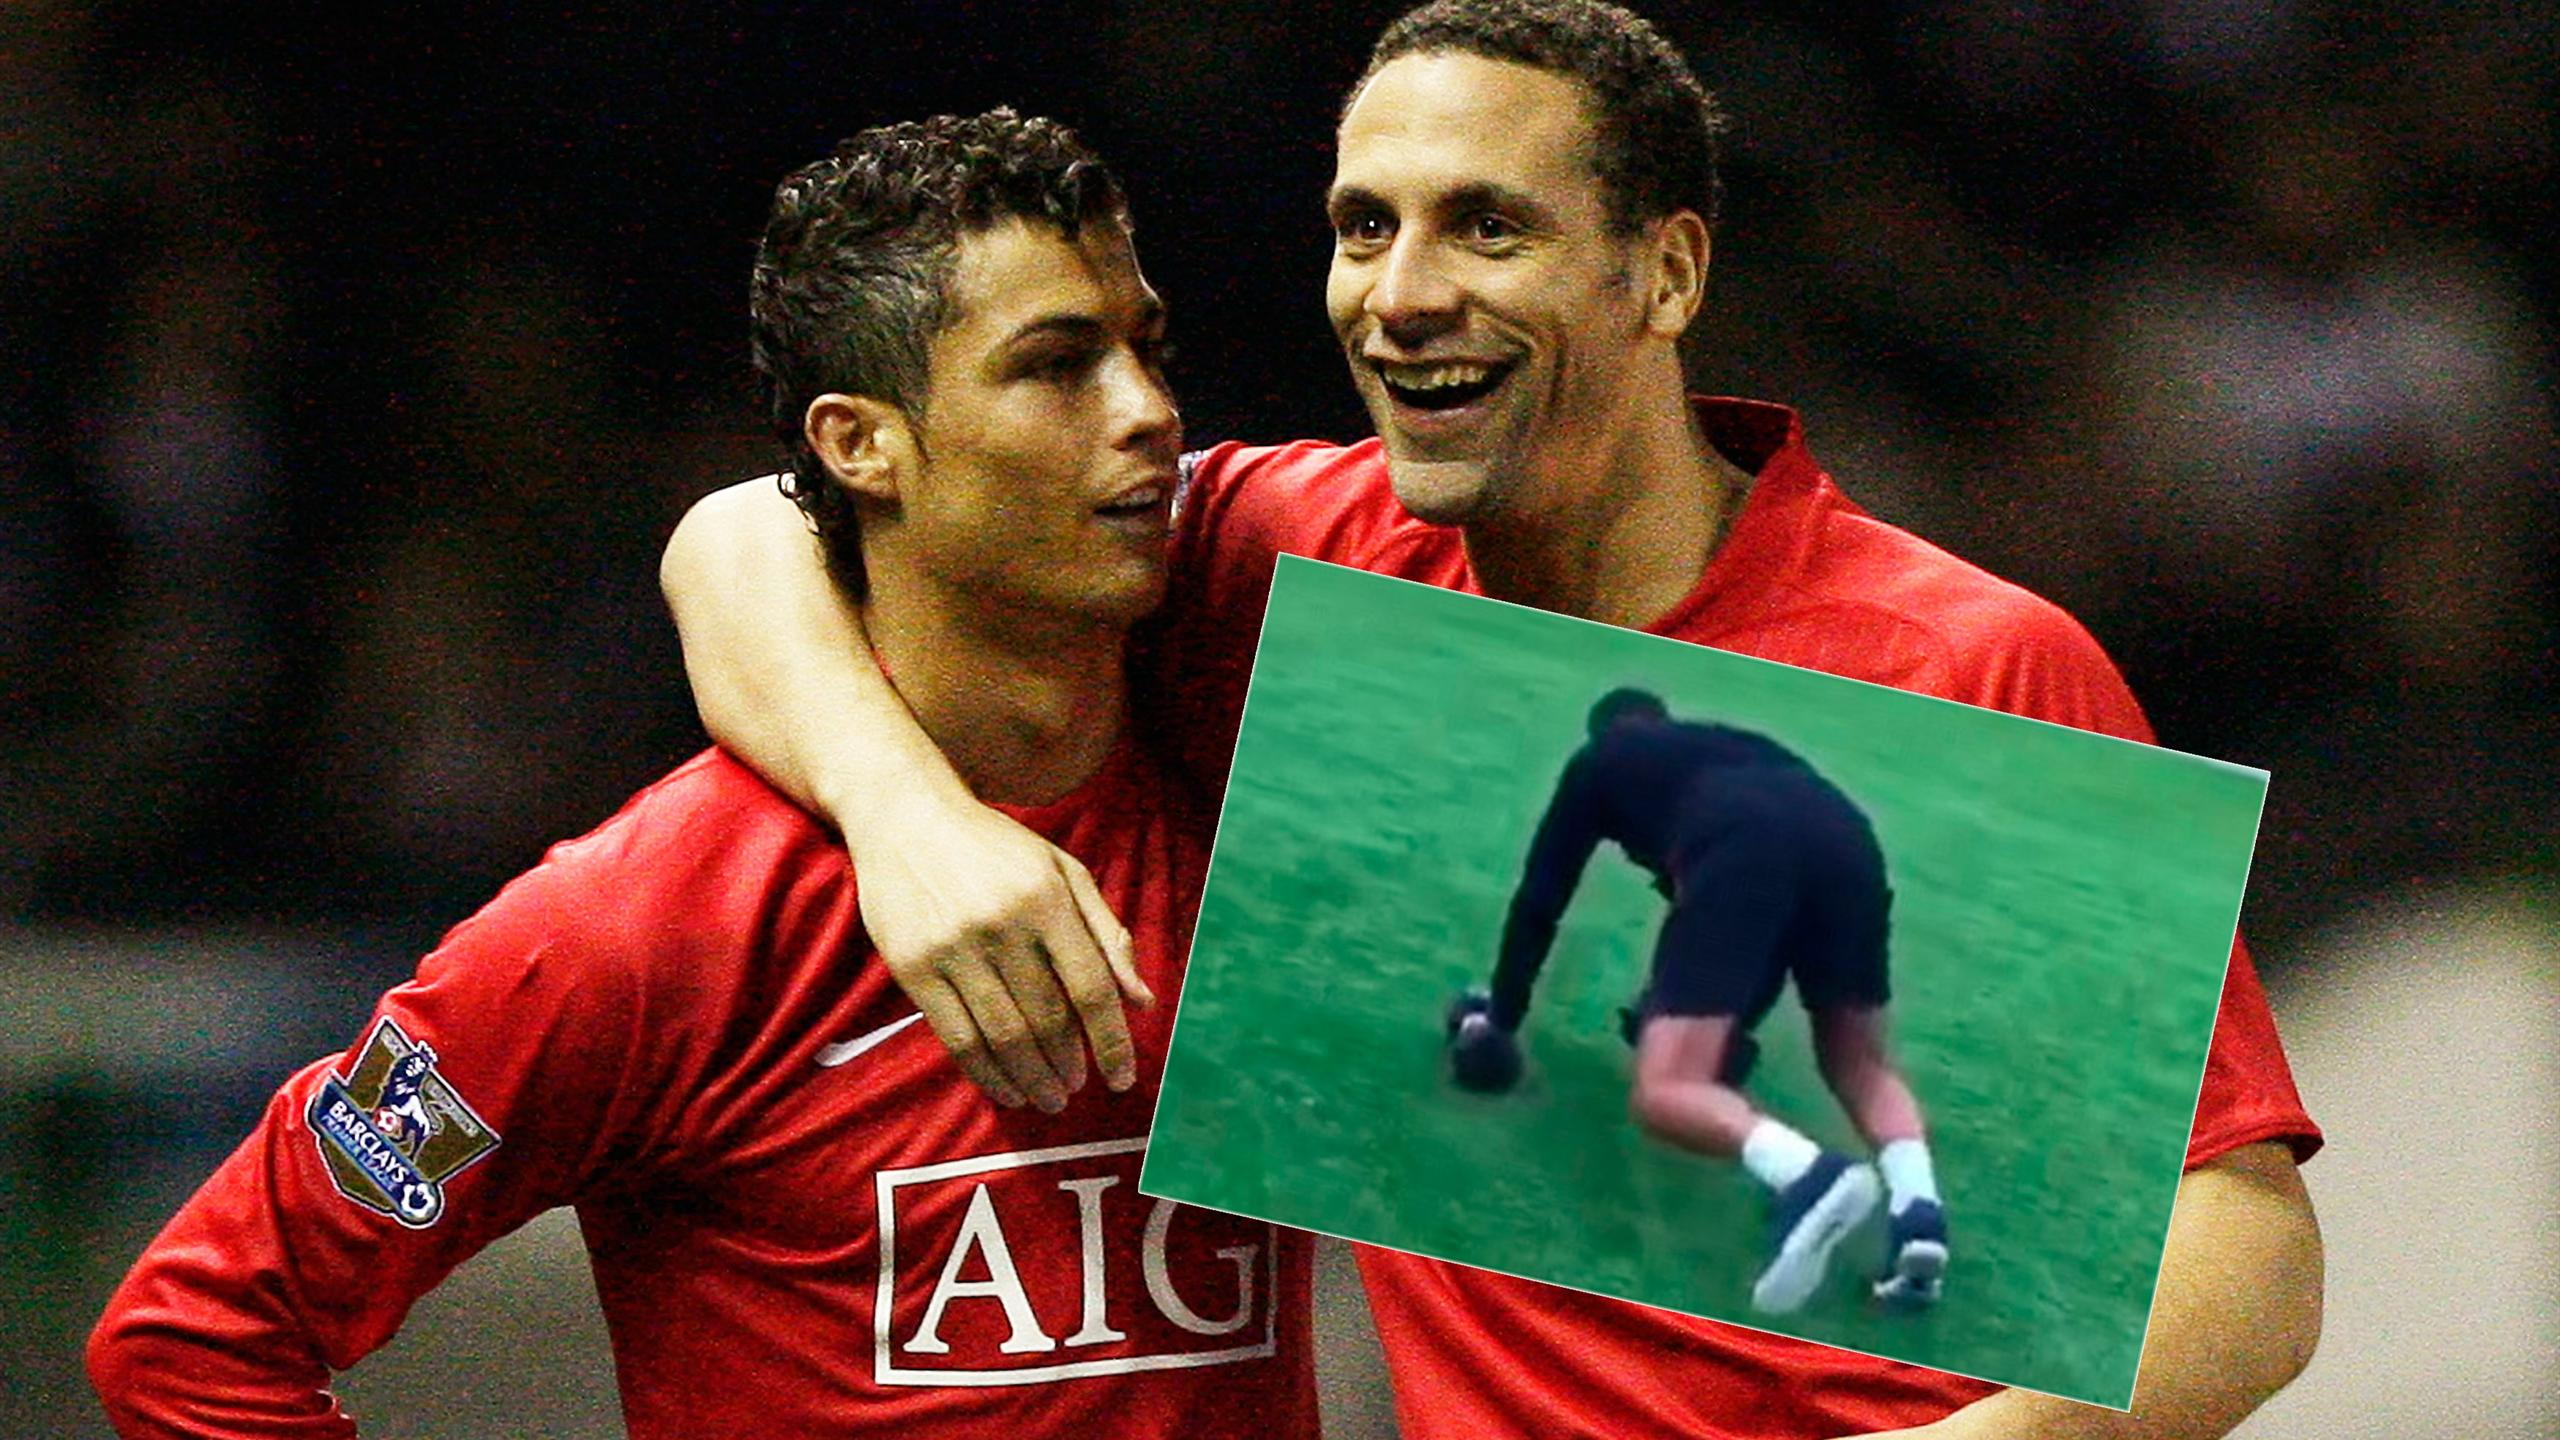 Cristiano Ronaldo and Rio Ferdinand have some wonderful banter on Instagram